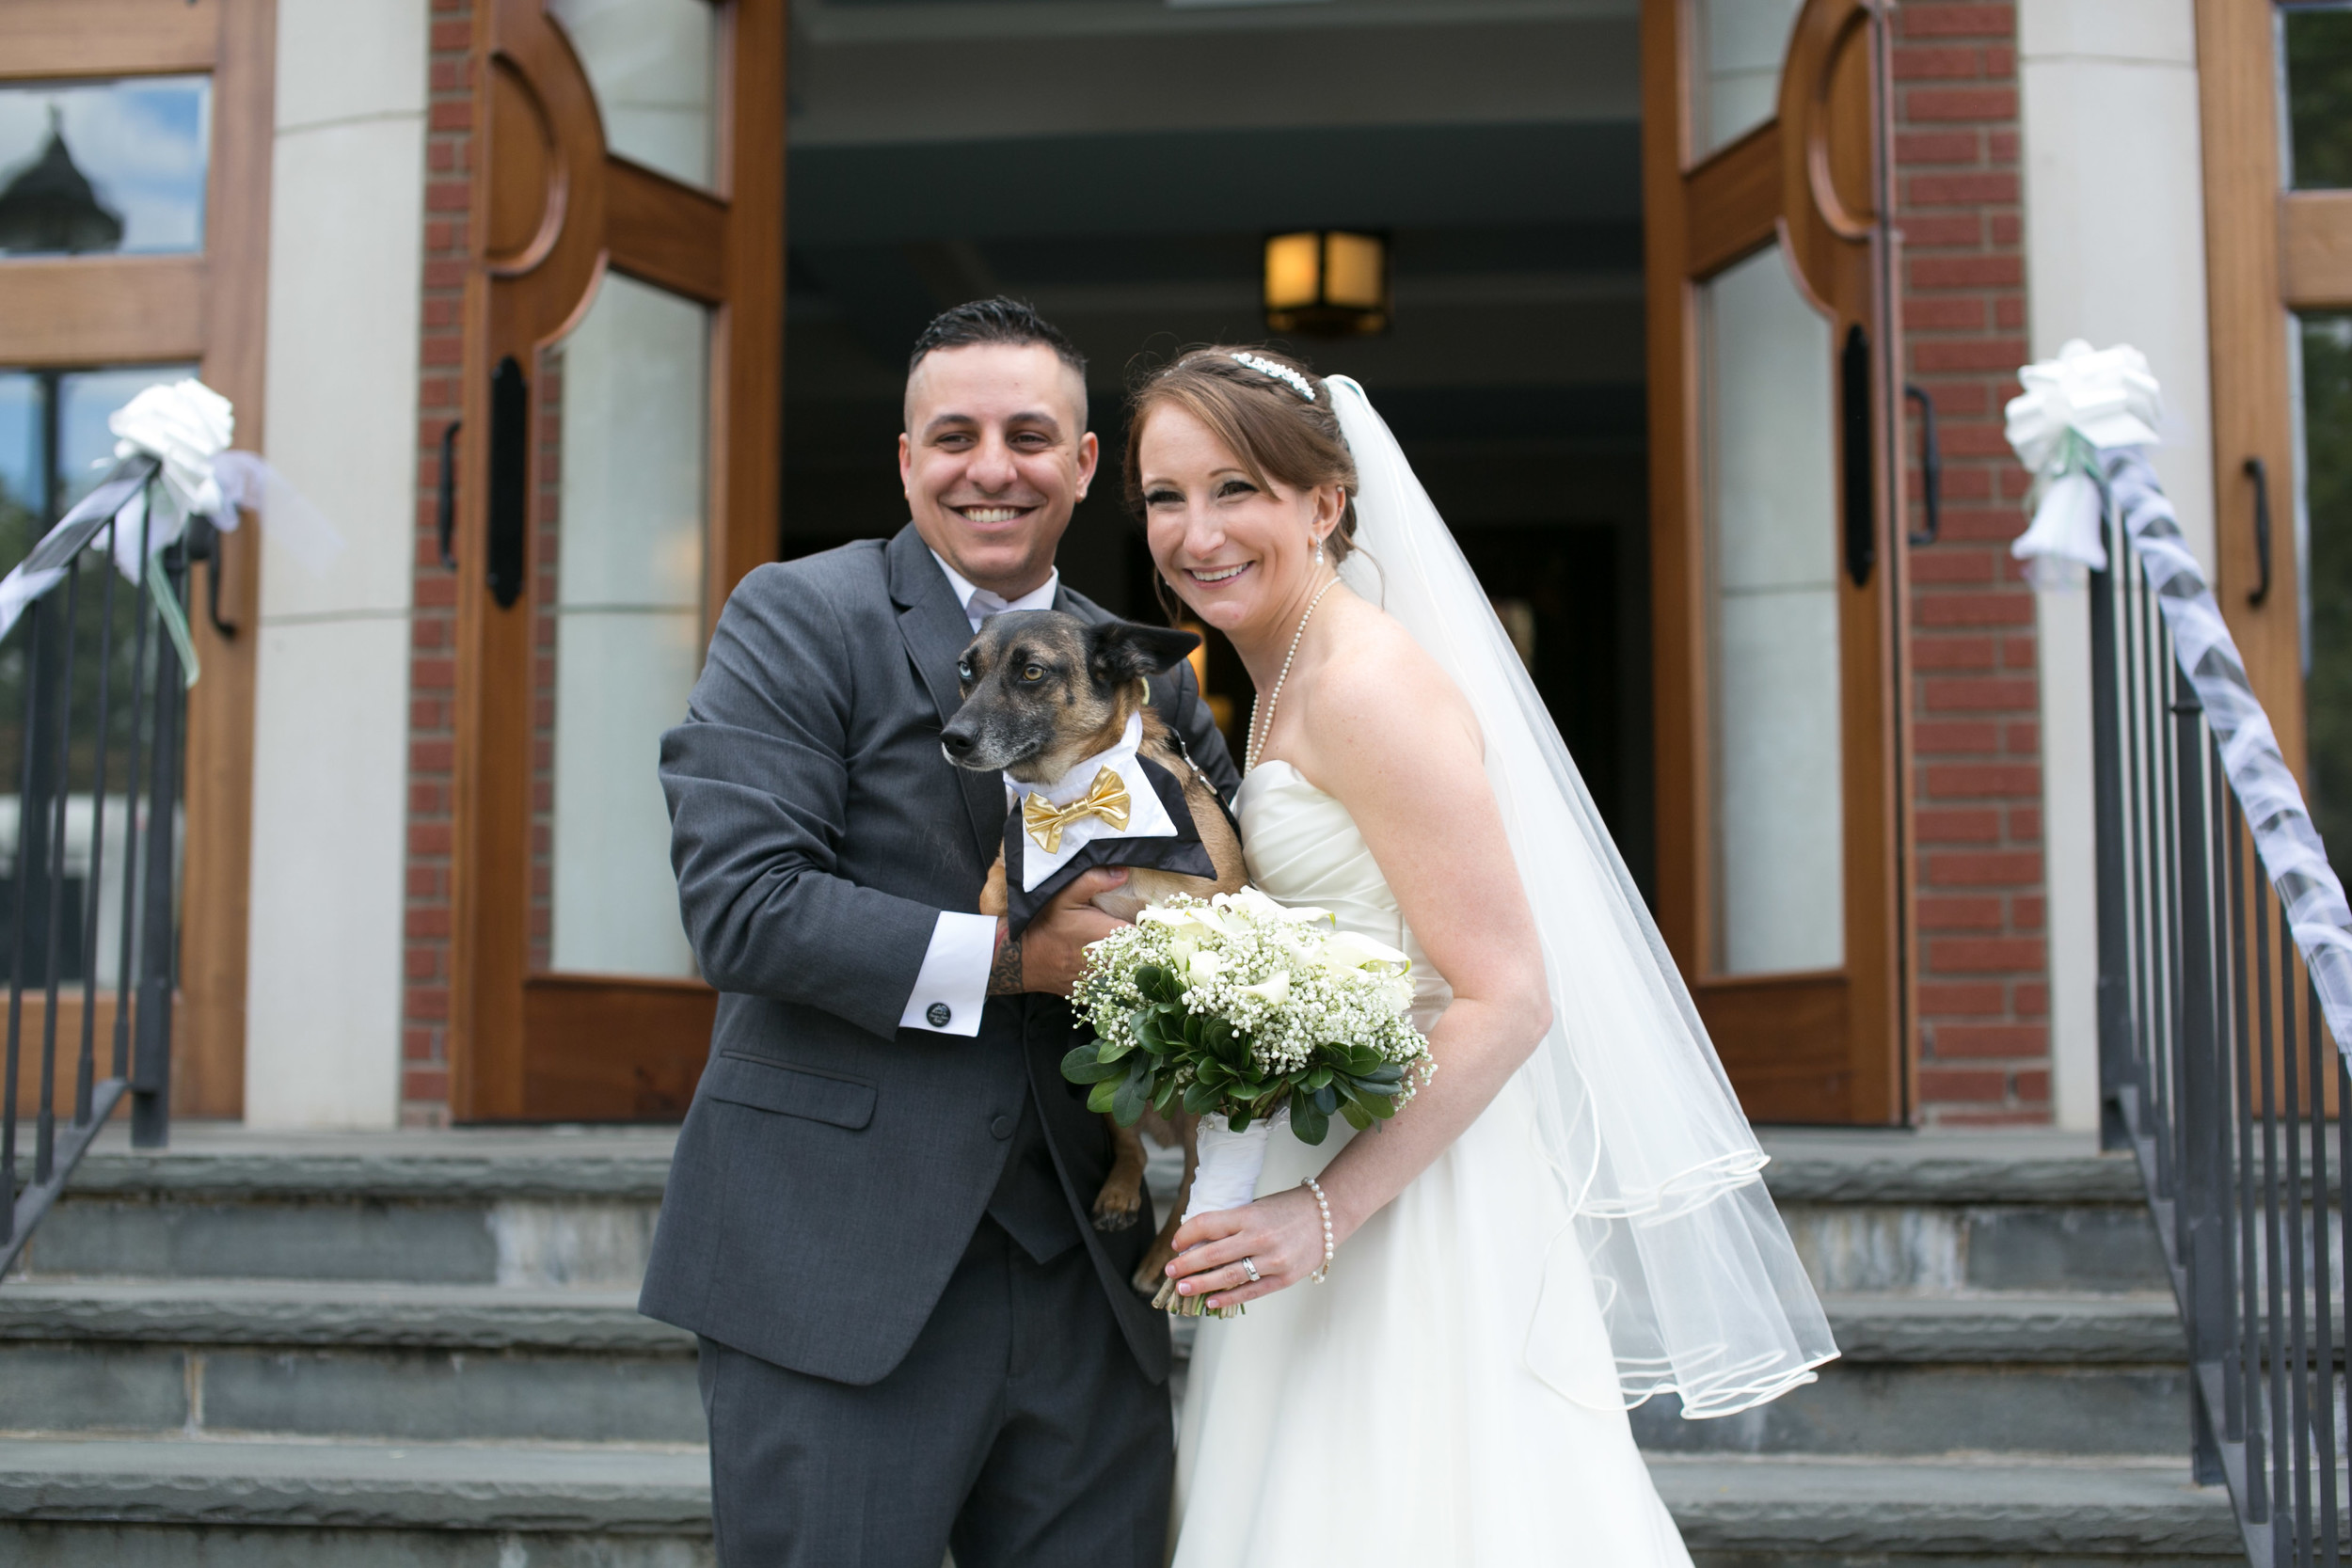 The Silvas on their wedding day with their dog JakeBear. Veronica had the idea to start Pawfect For You after having difficulty managing care for her dog during her own wedding.